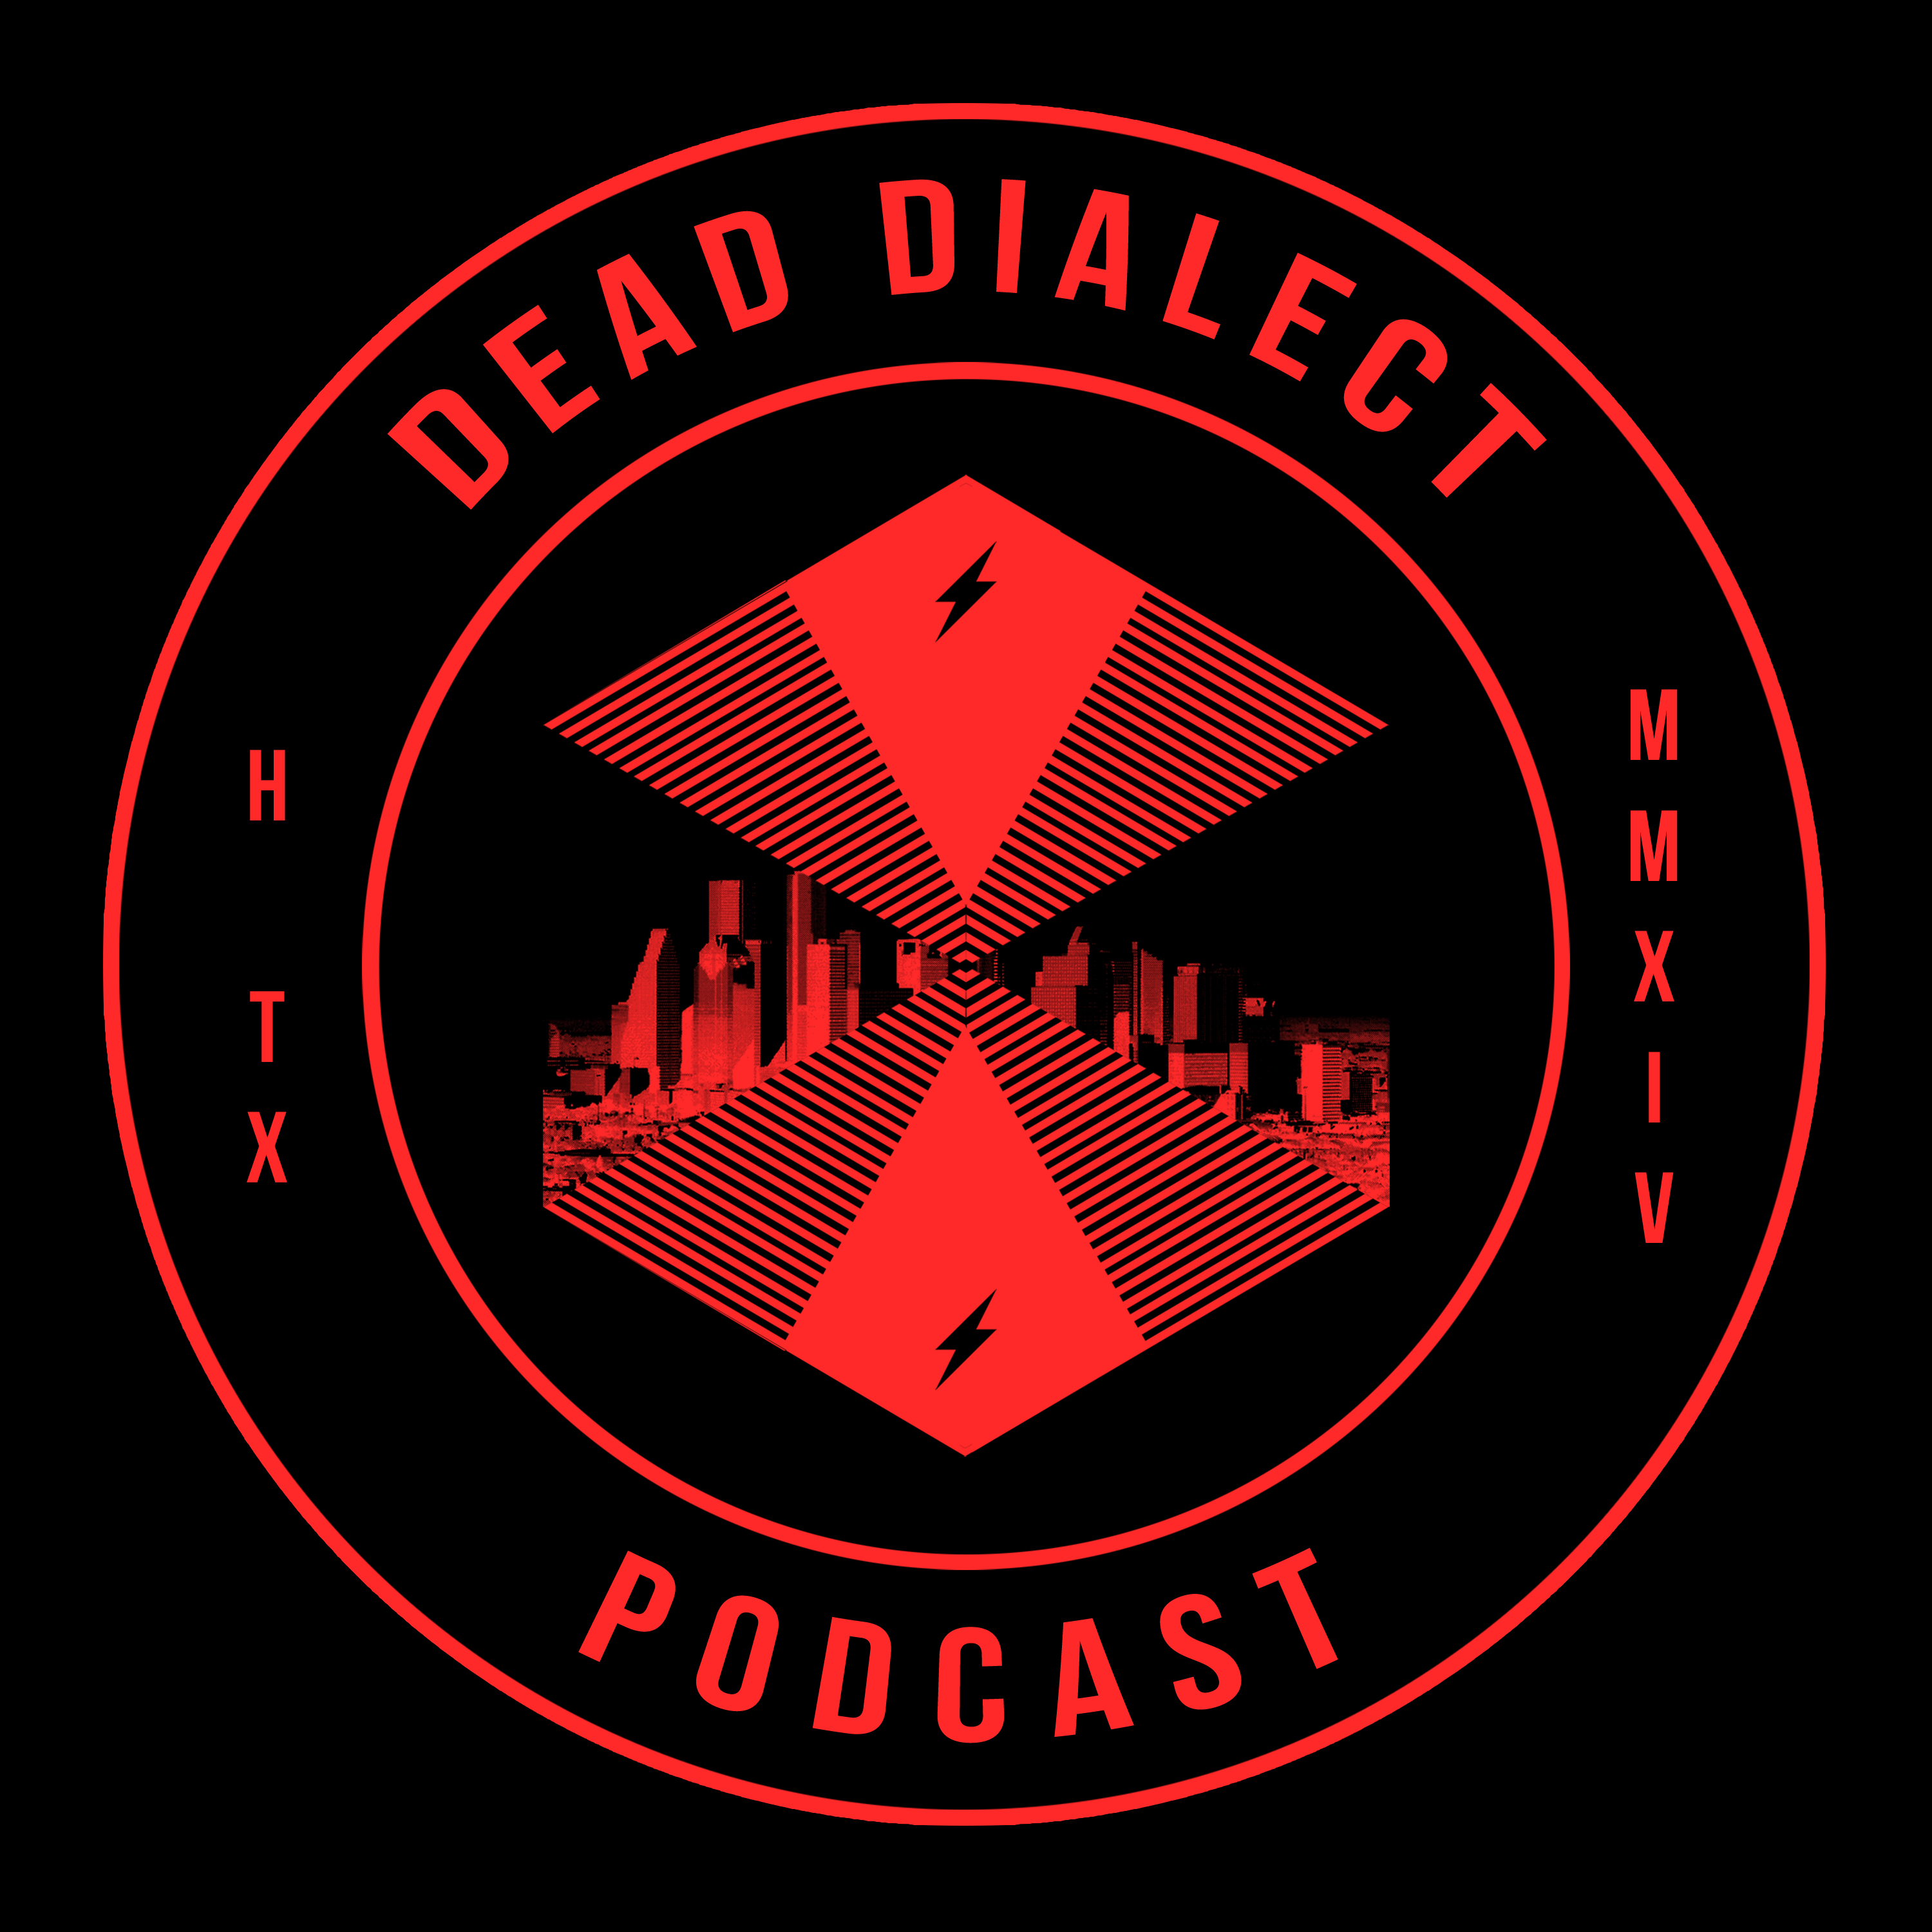 Dead Dialect Podcast